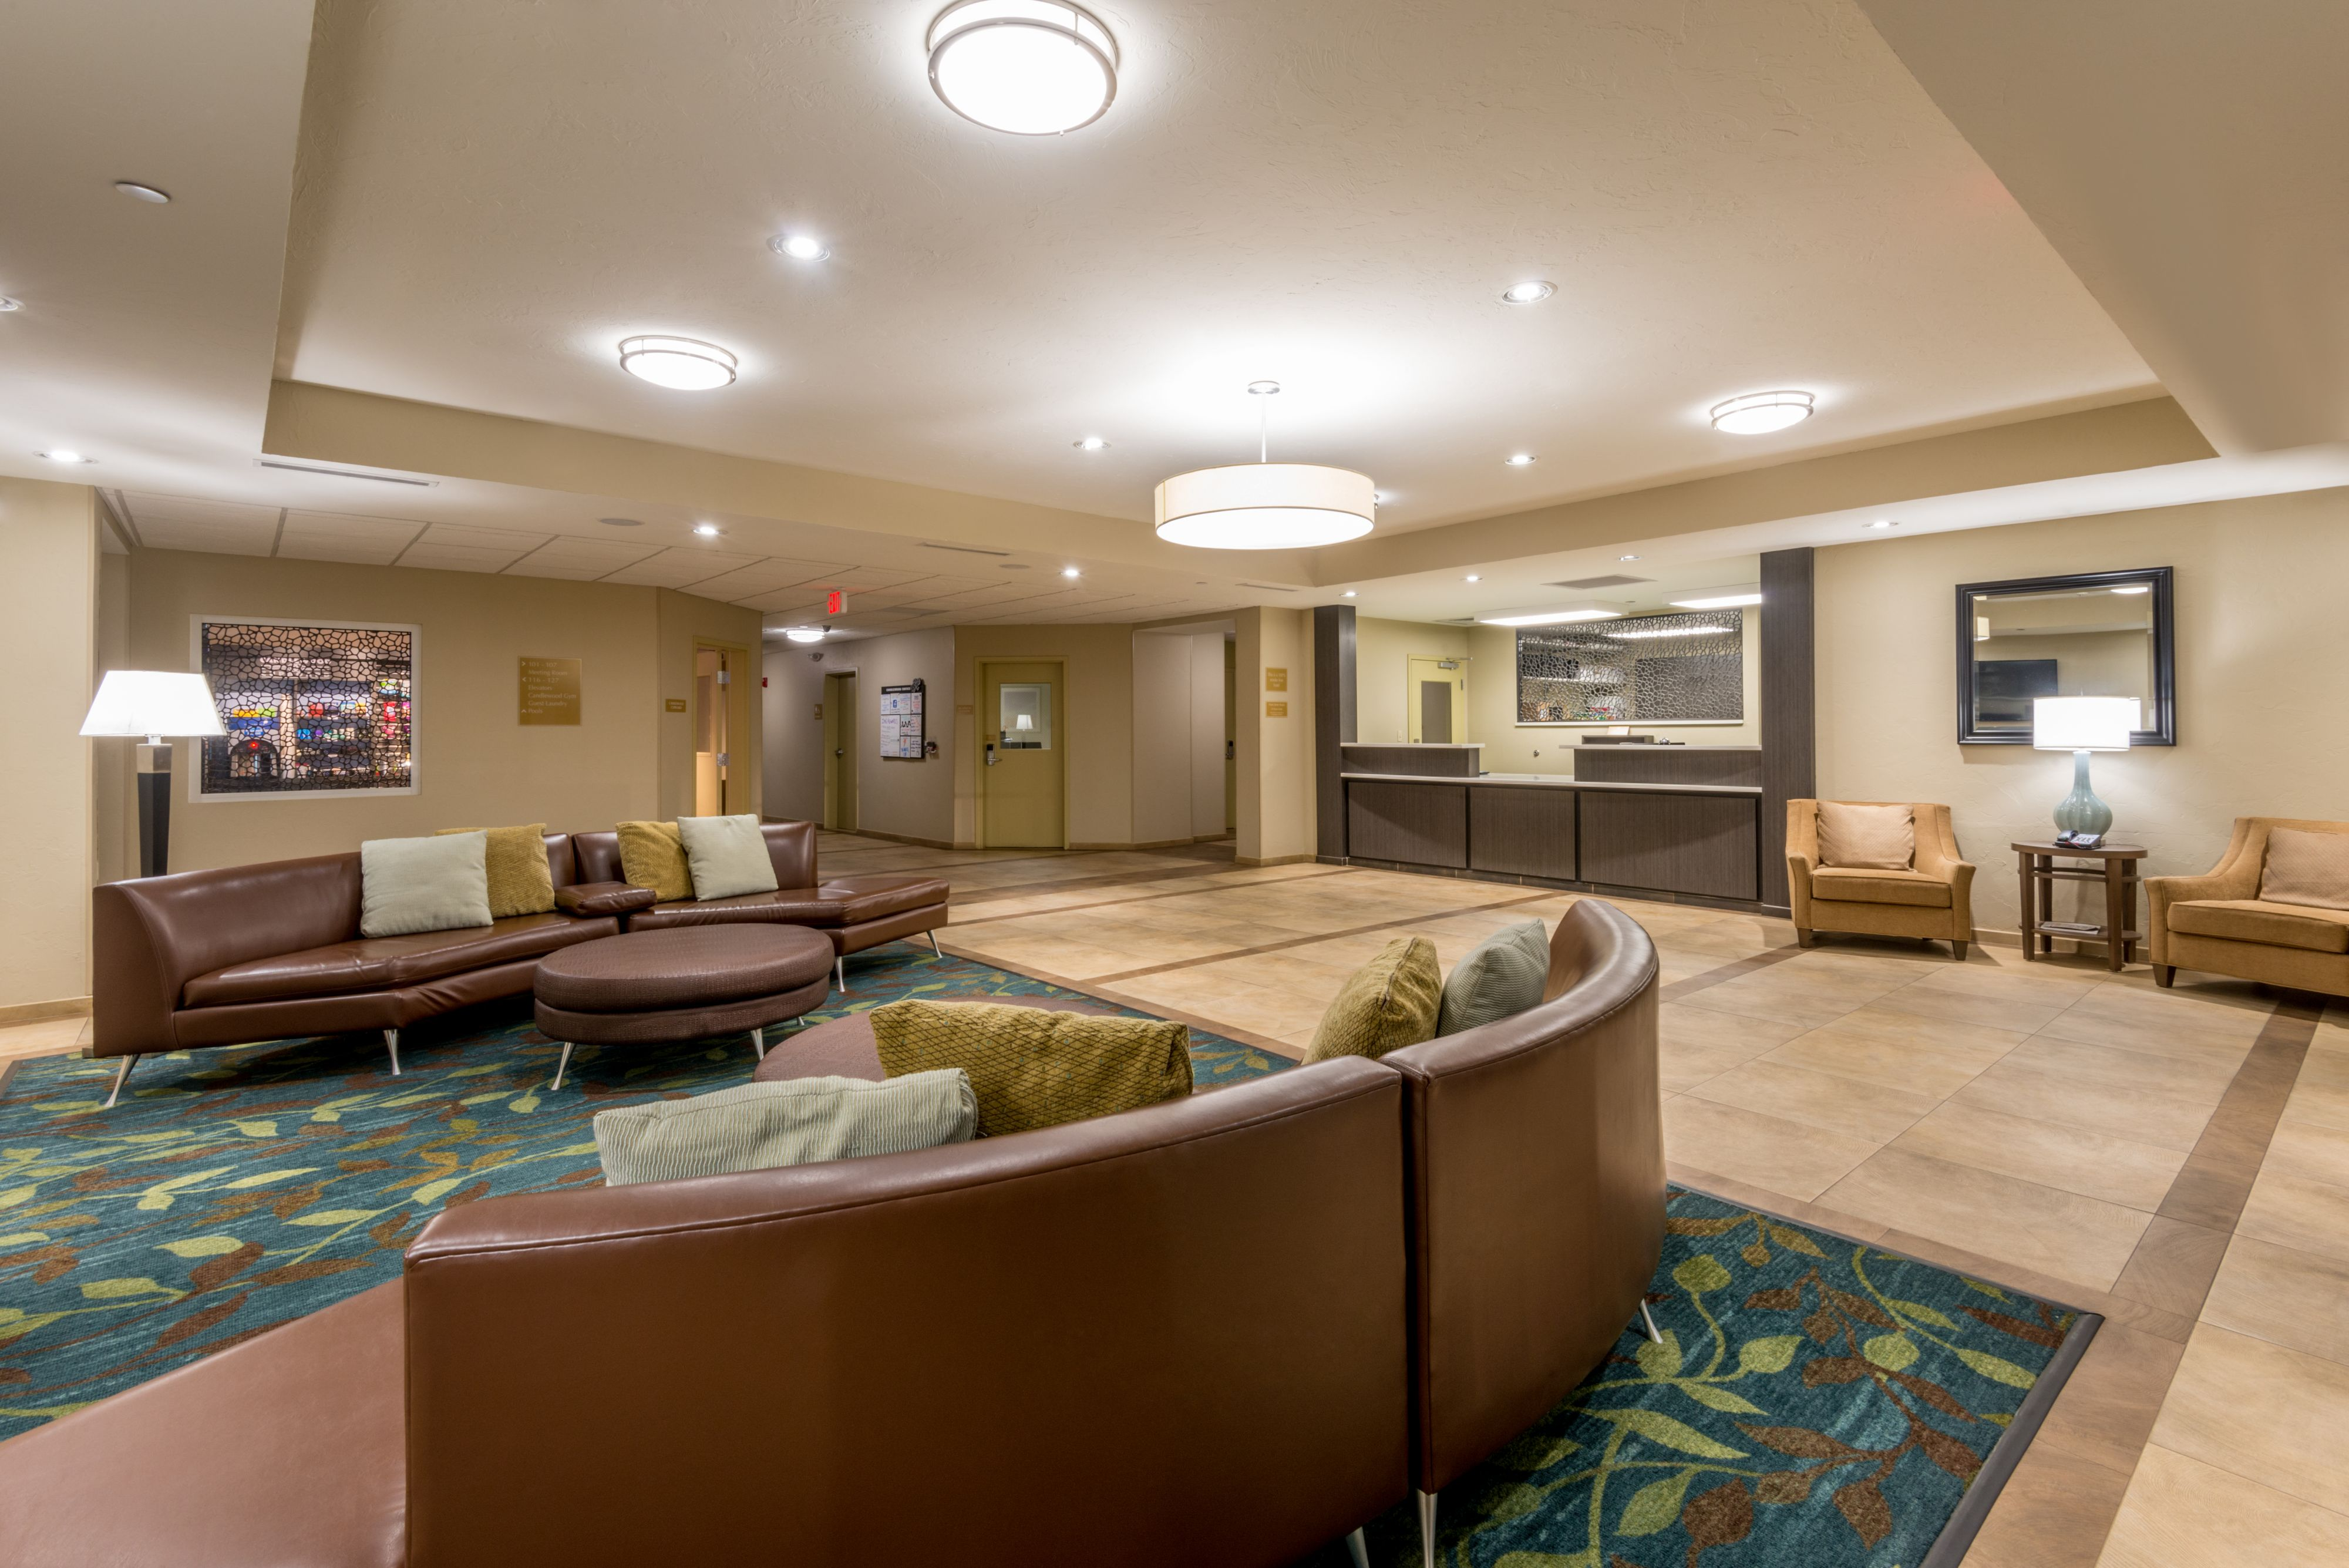 Candlewood Suites Midwest City image 4